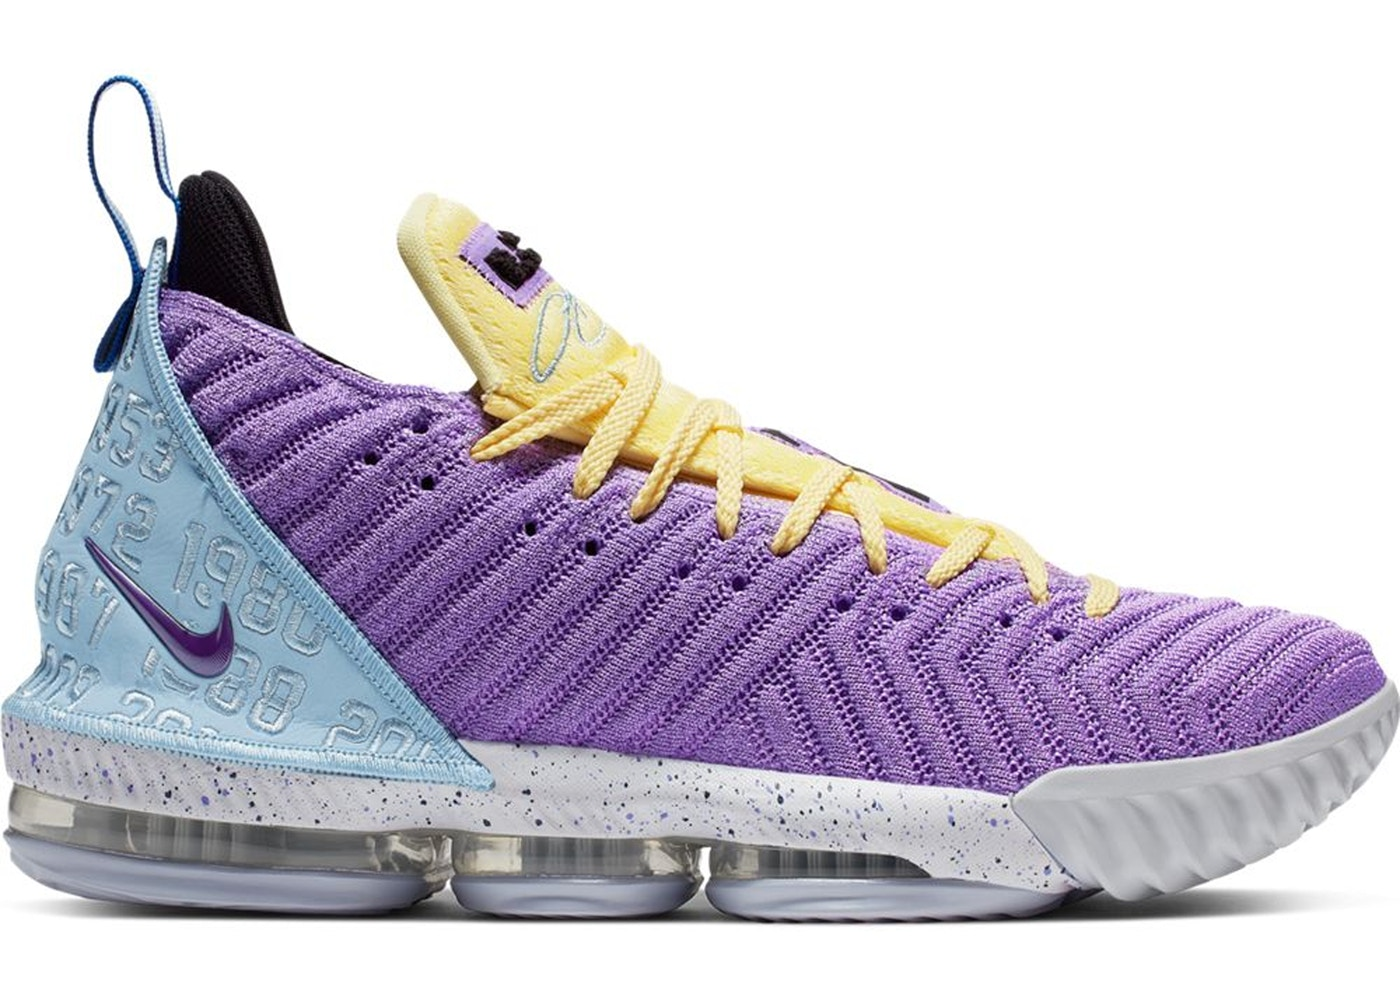 043fb6d7da2 Sell. or Ask. Size: 8.5. View All Bids. LeBron 16 Lakers Championships